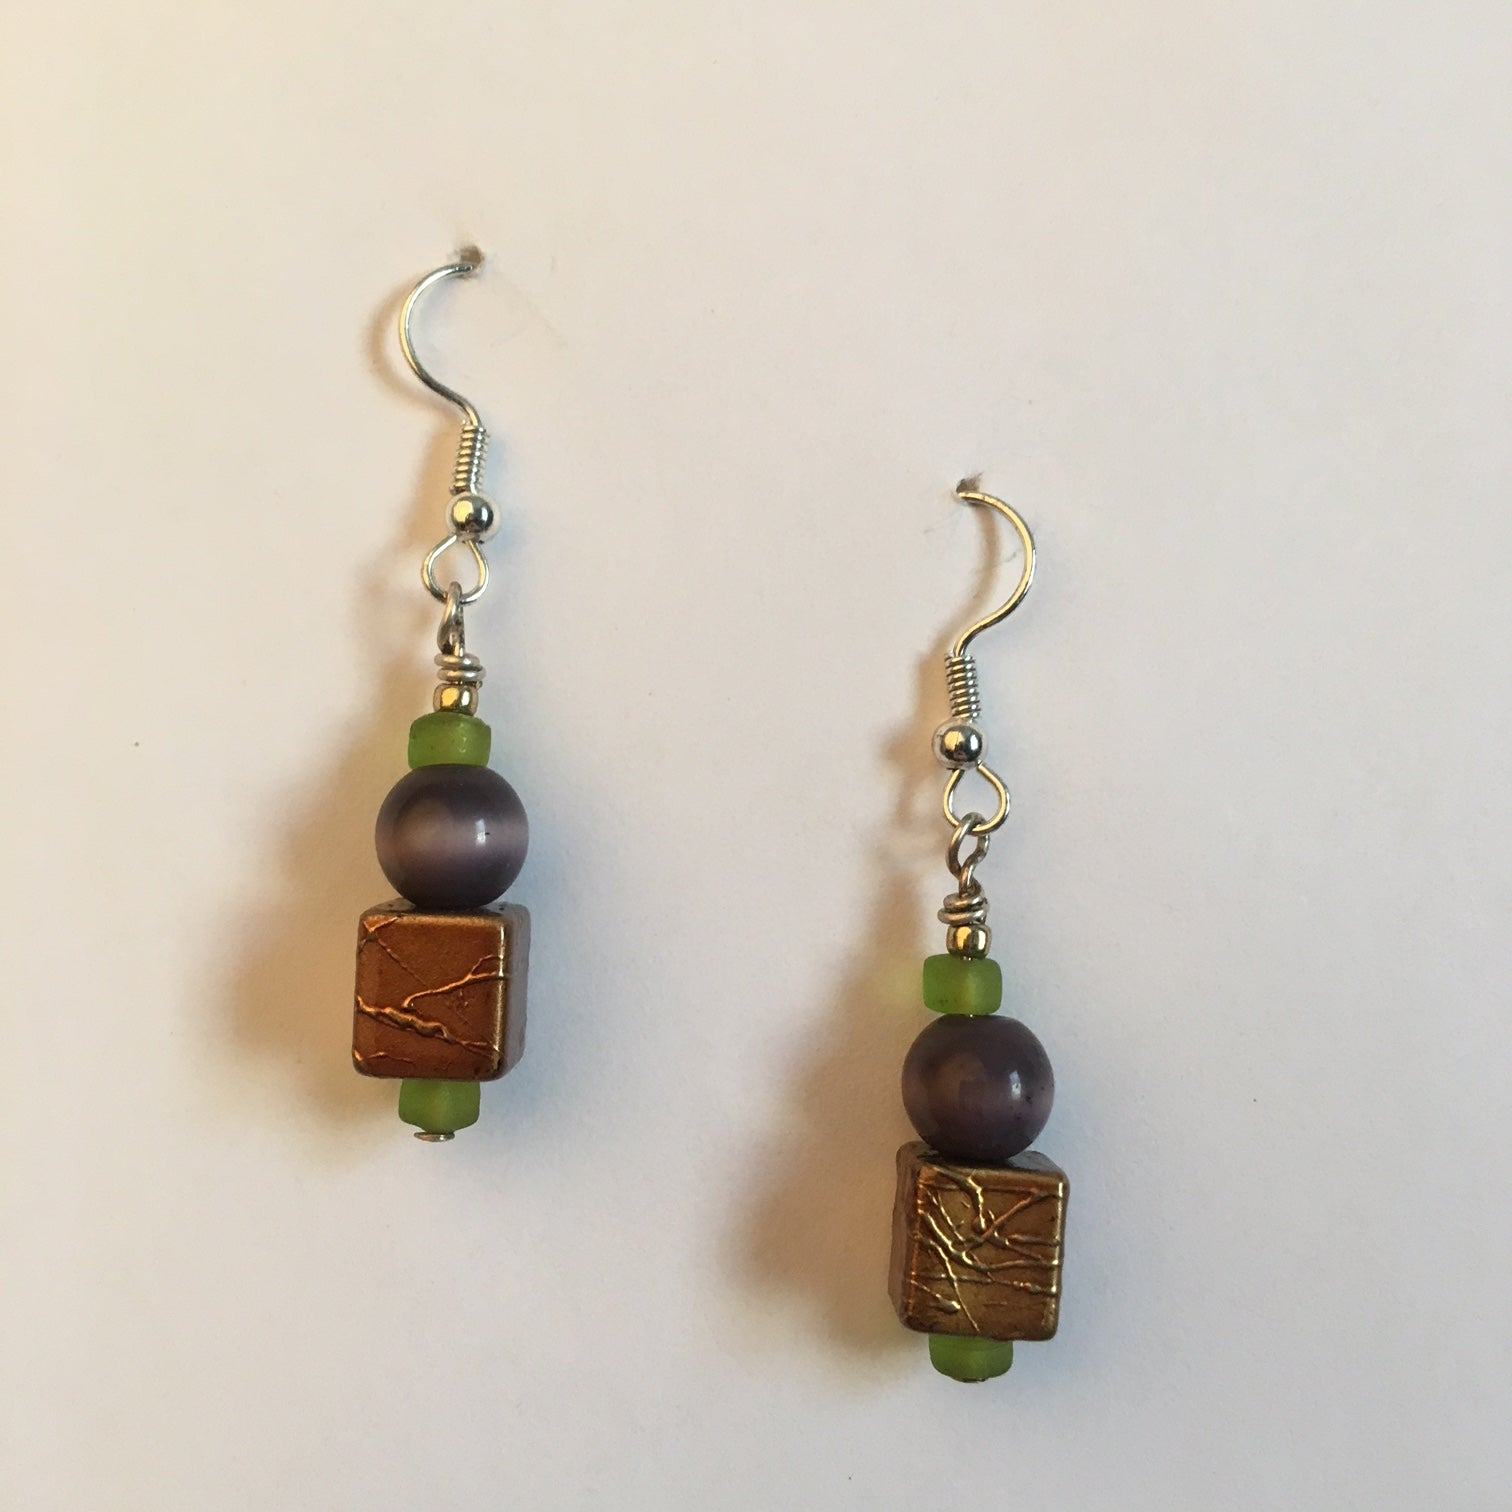 Vintage Beaded Earrings #13